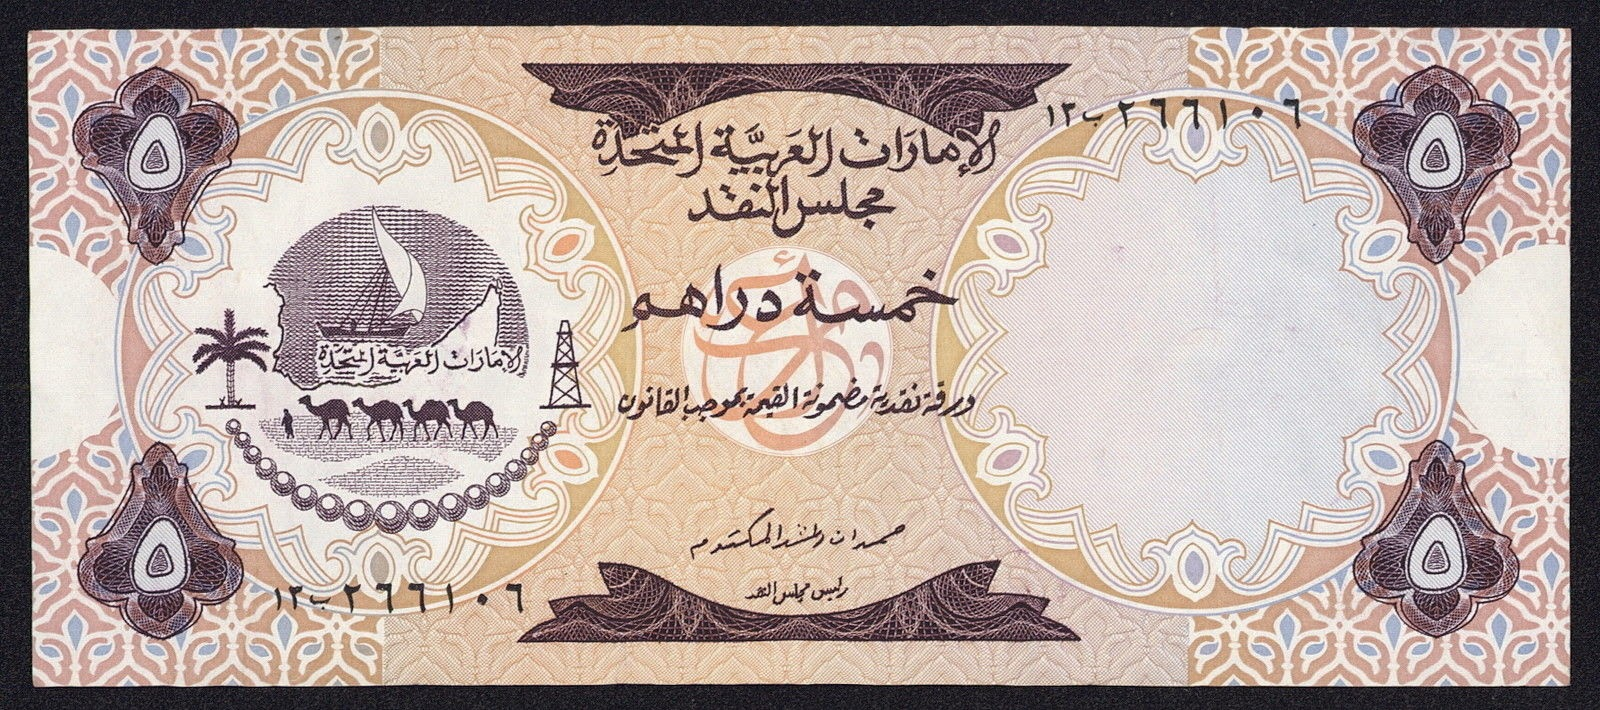 What Currency Does United Arab Emirates Use Peoples Bank Al